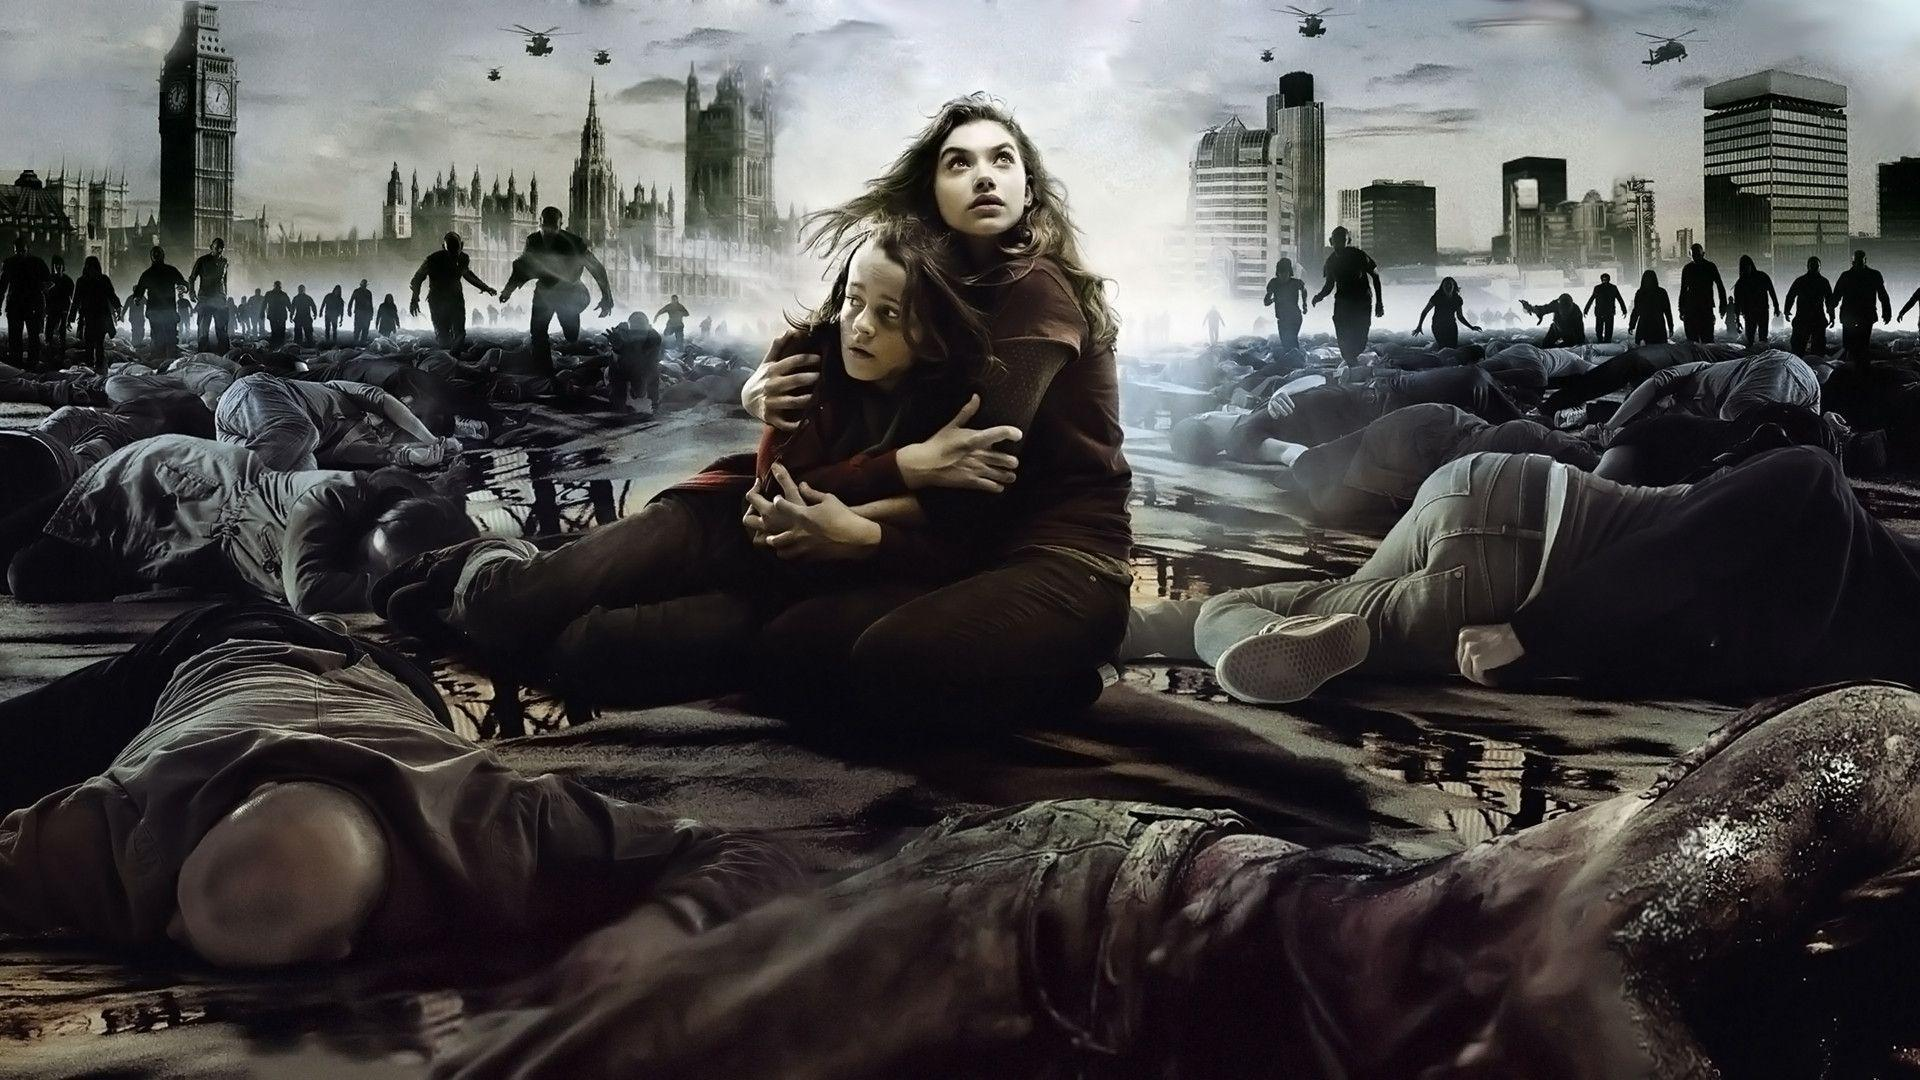 Download Wallpapers 1920x1080 28 weeks later, zombies, alone, city